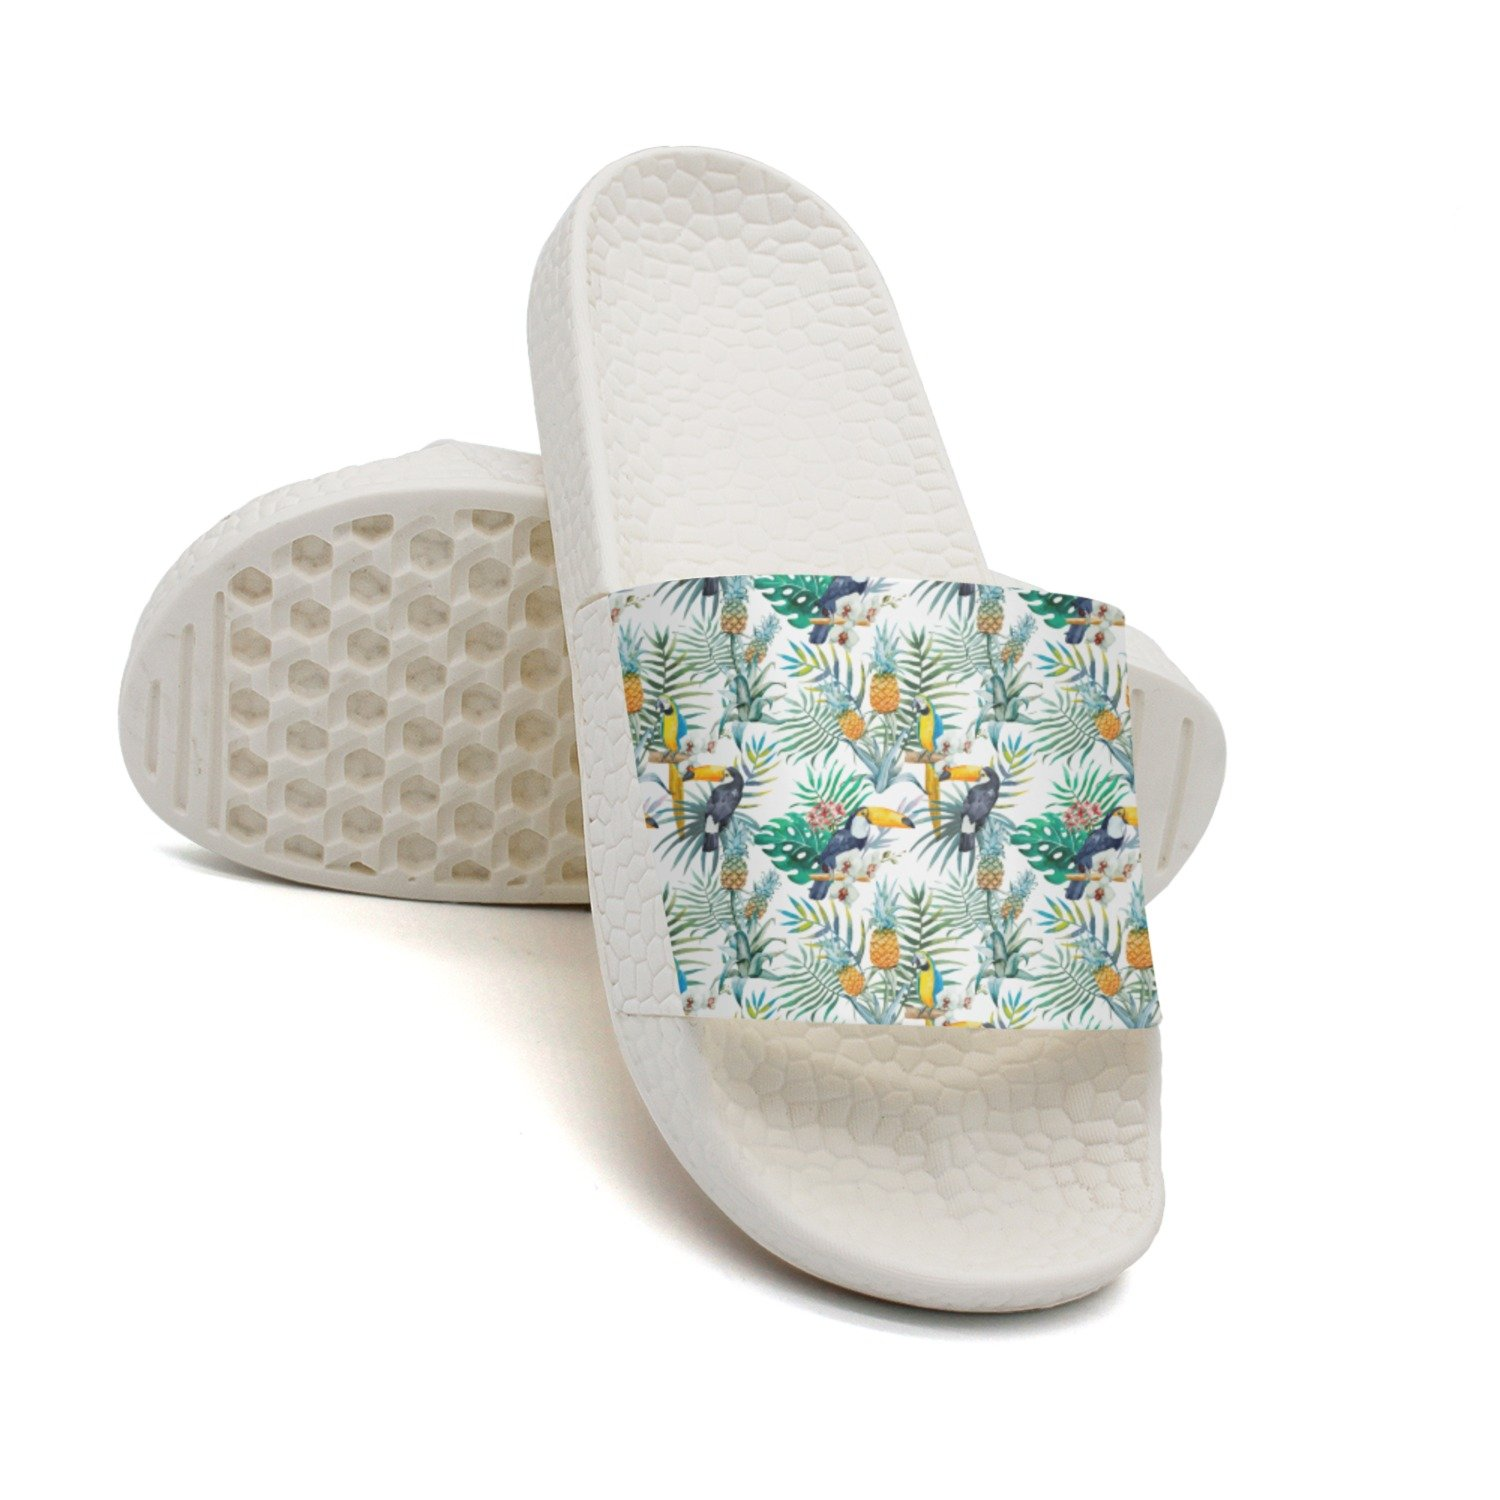 Ether Dobbin Unisex Tropical Pineapples And Birds Anti-Slip Slippers Athletic Slide Sandals